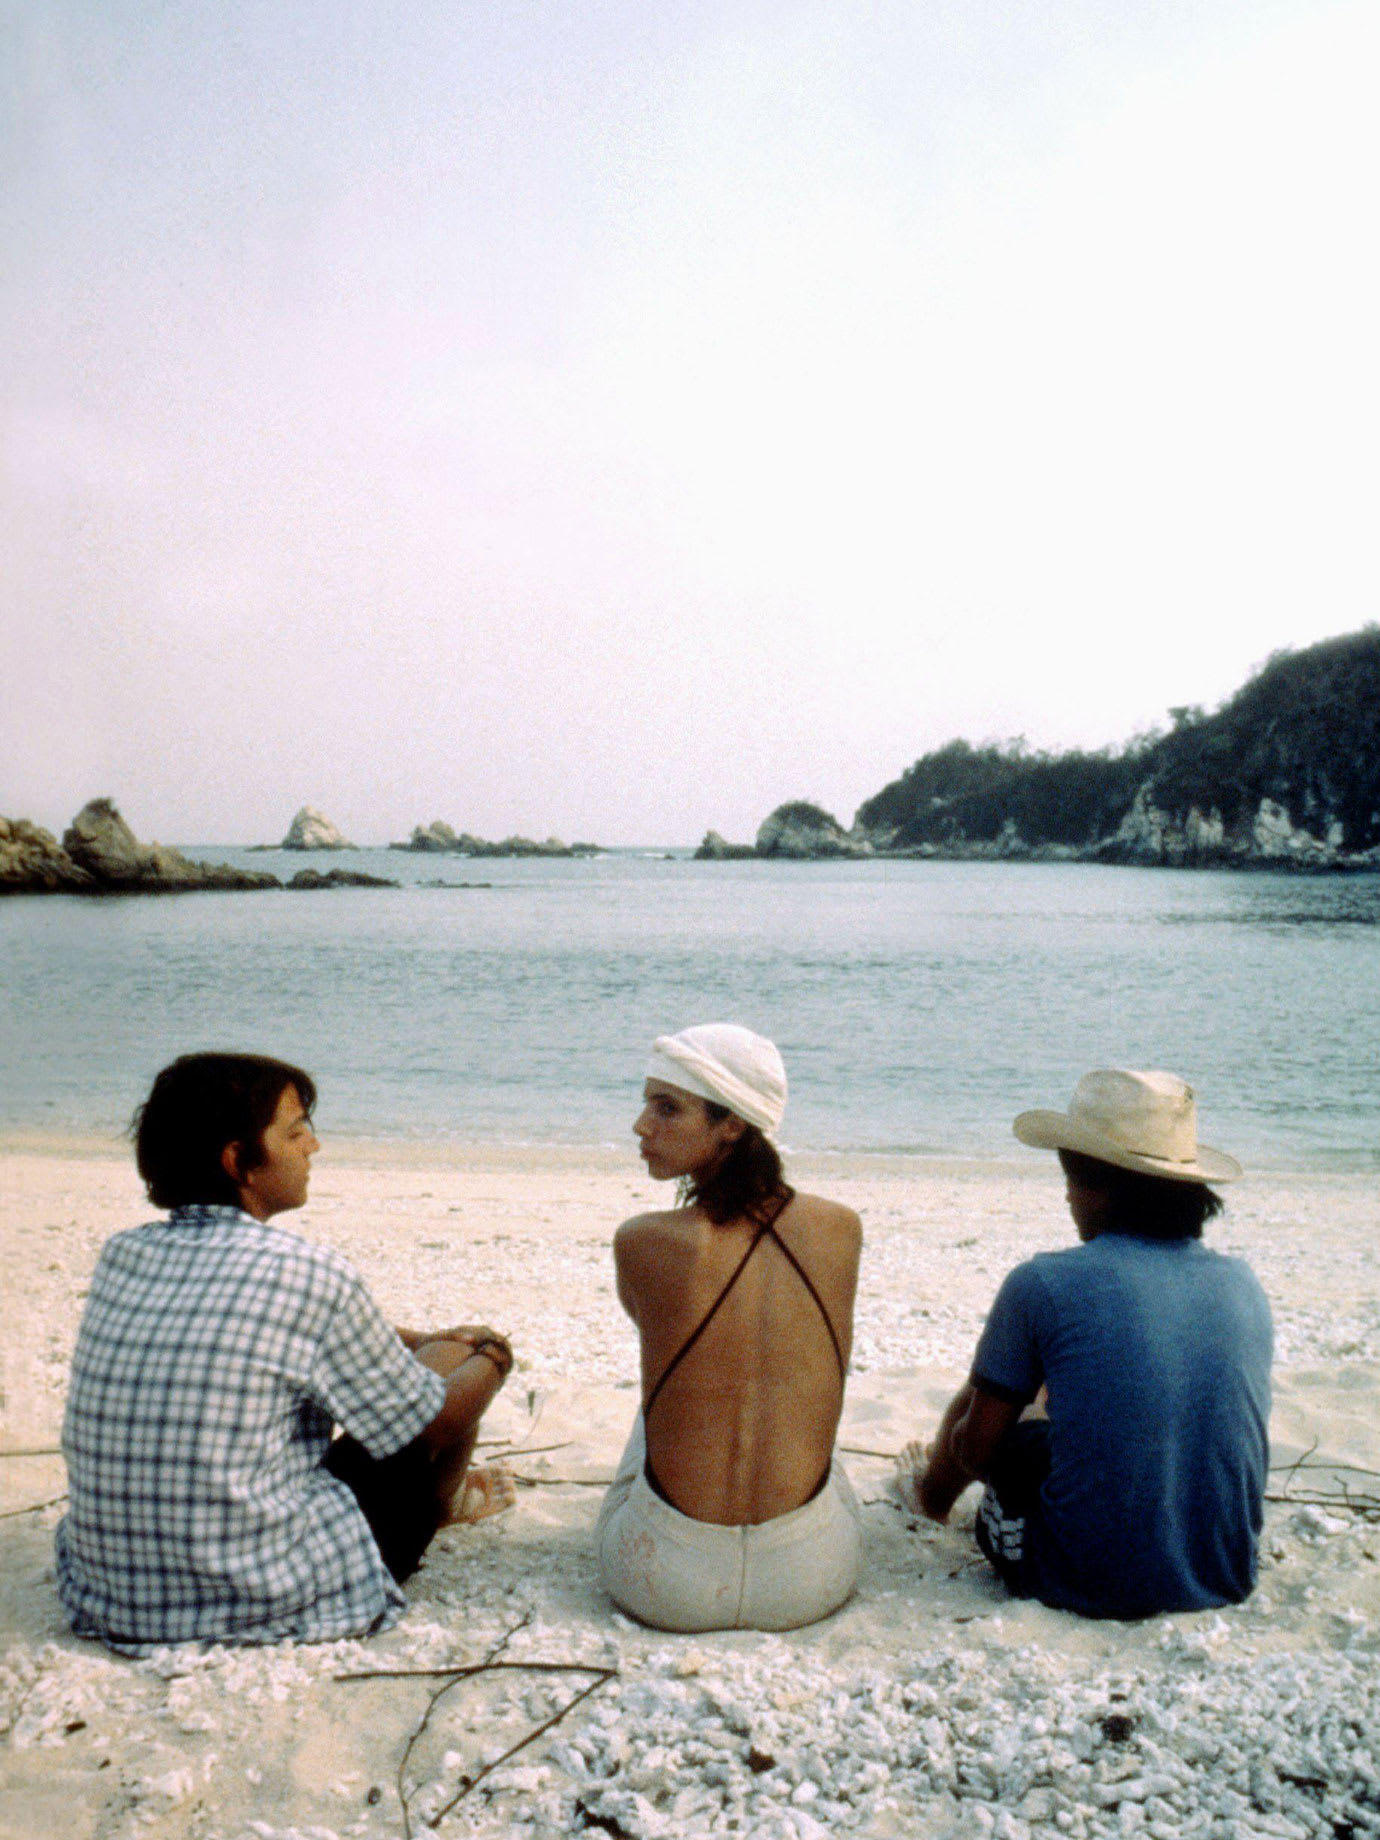 A woman and two men sitting on a beach and looking at the sea.